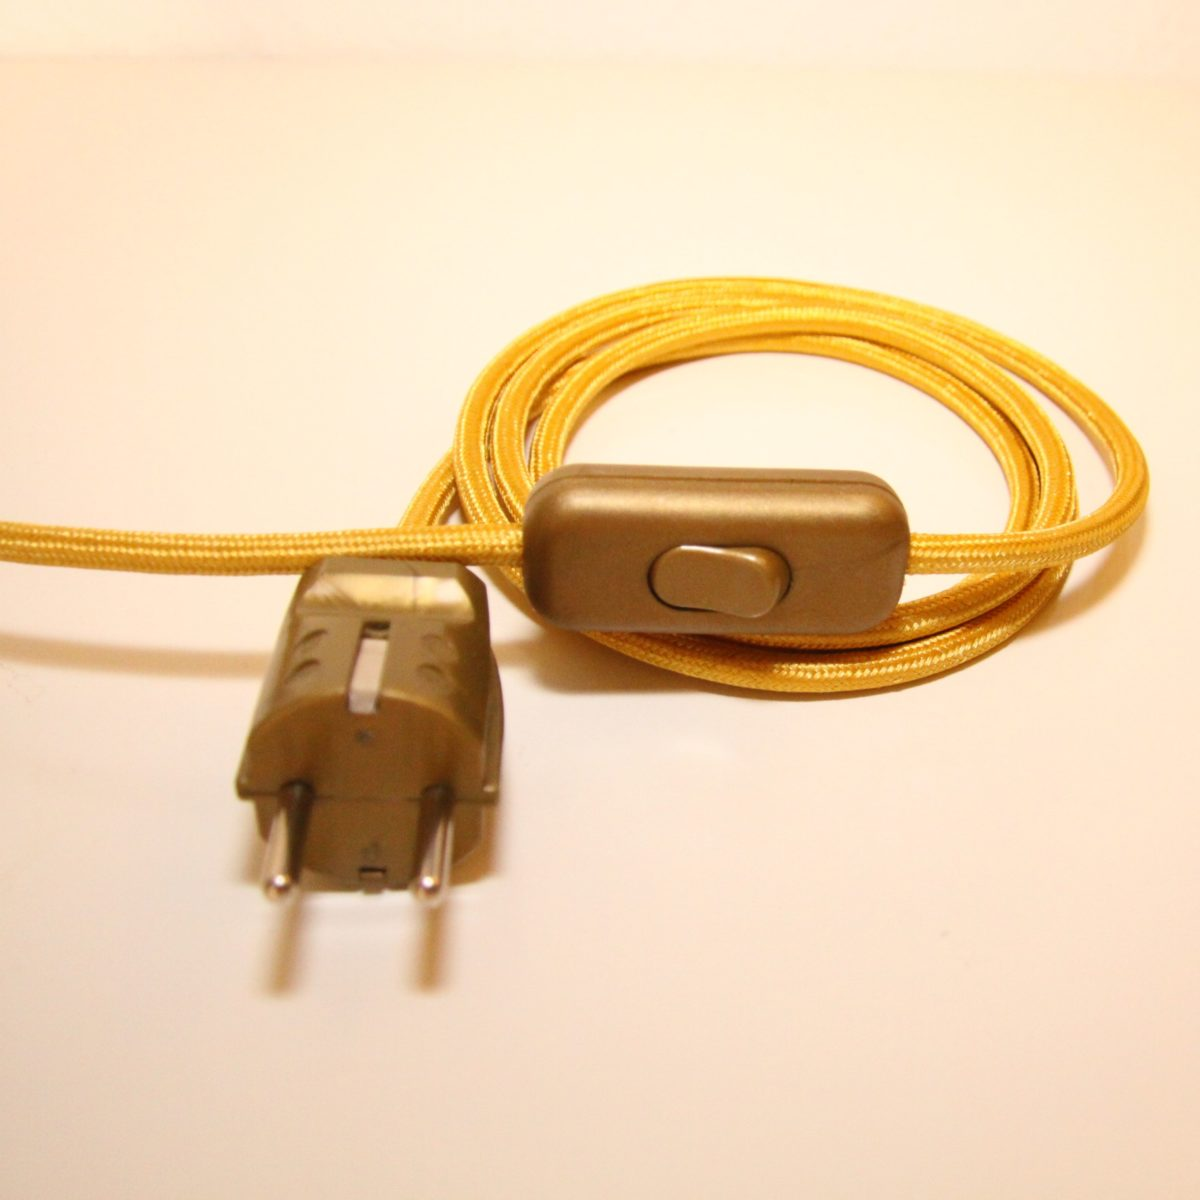 Kabel_Cable_Gold